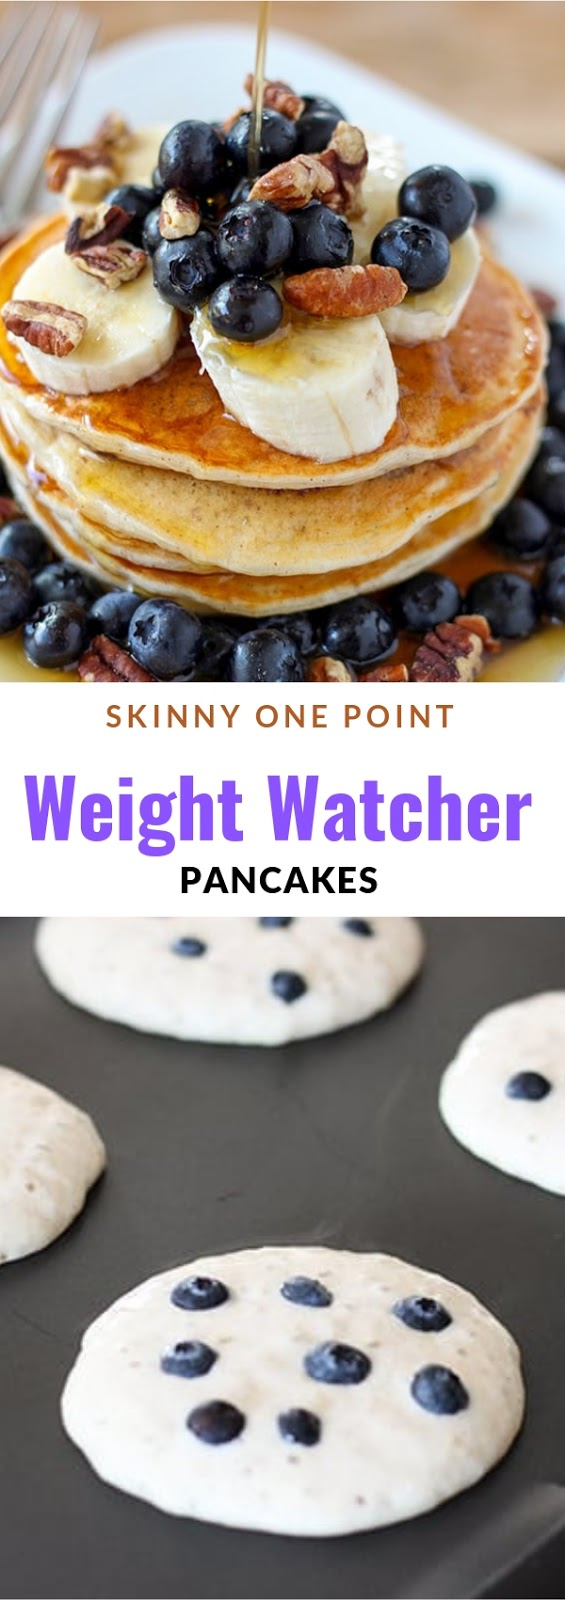 Skinny One Point Weight Watcher Pancakes #breakfast #skinny #onepoint #weightwatcher #pancake